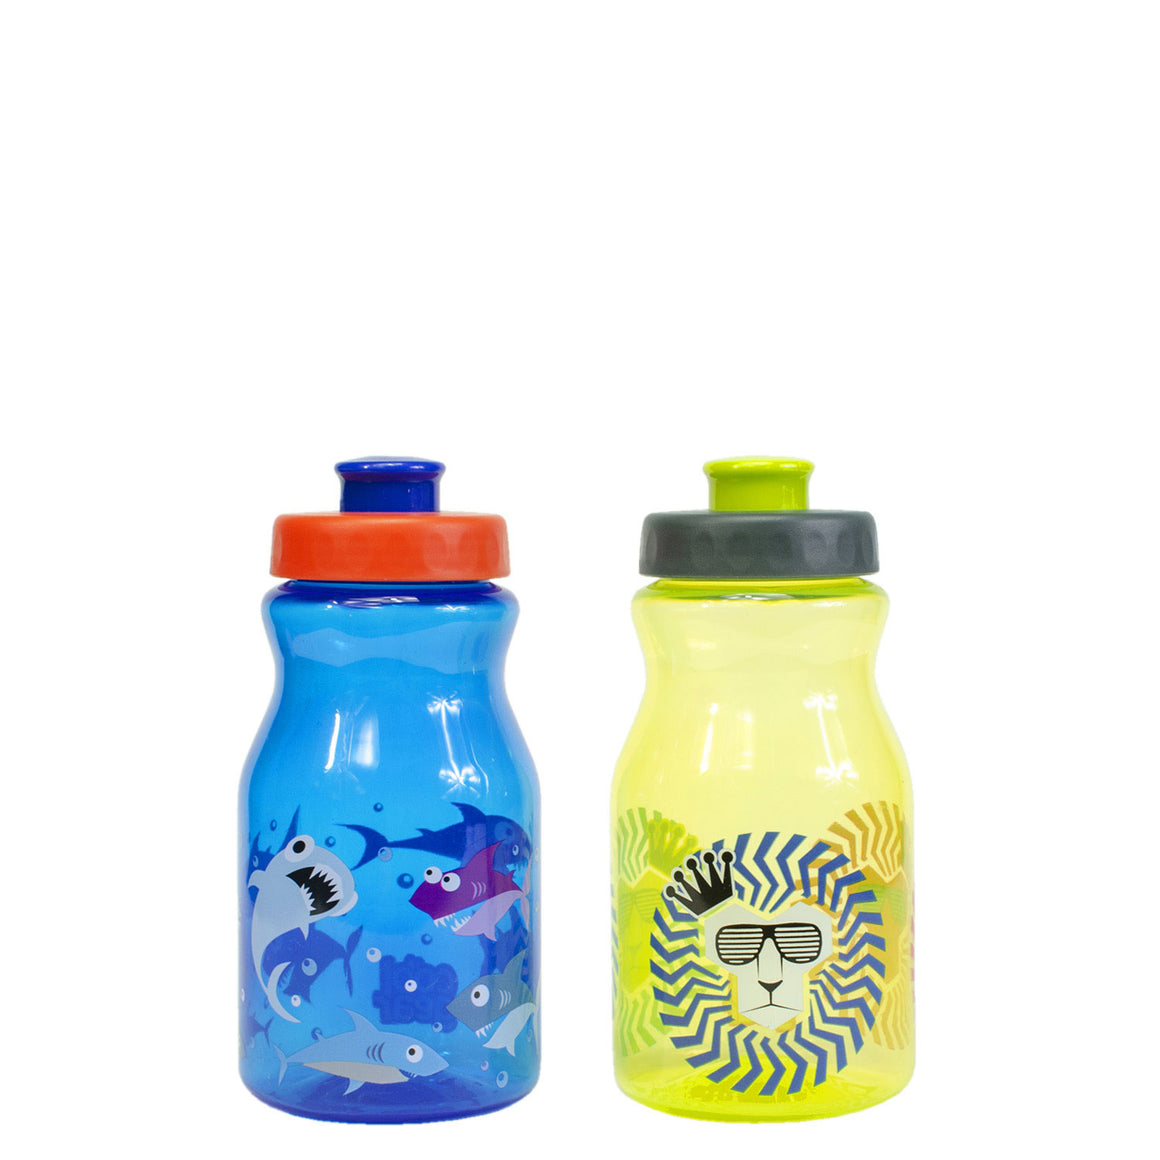 Tottie 12 Oz Printed Water Bottles 2-Pk in Dark Blue Sharks / Green Lions at Cool Gear